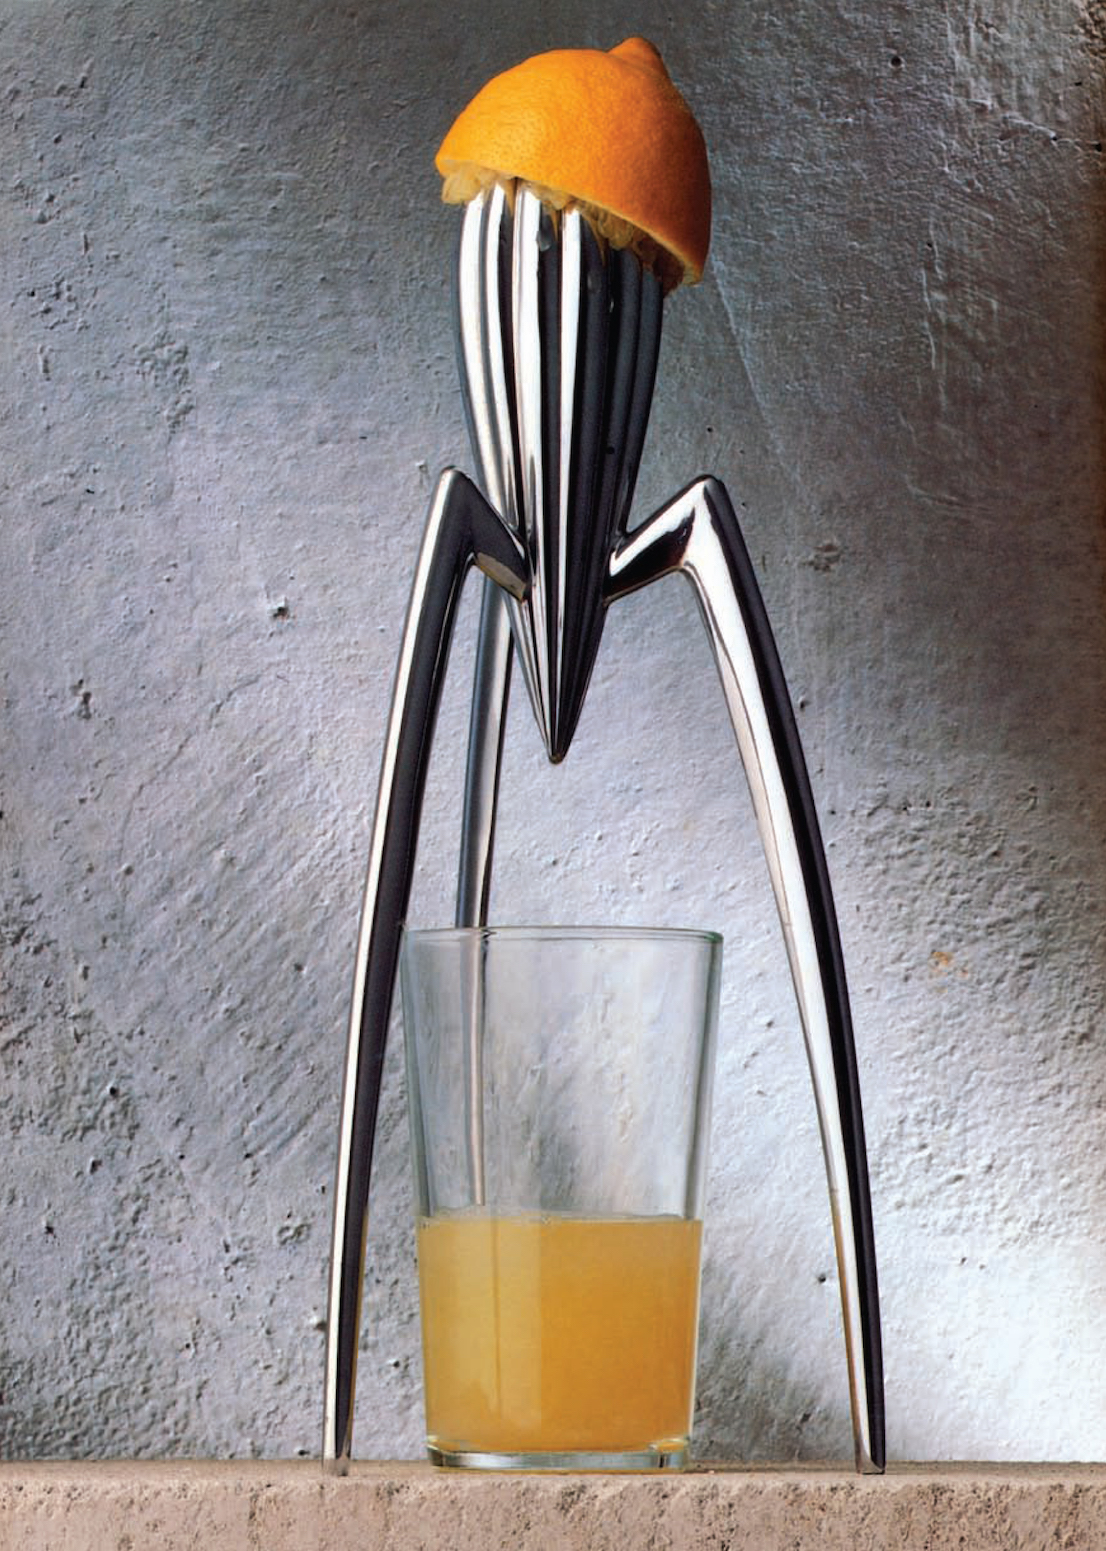 Juicy Salif, design di/by Philippe Starck per/for Alessi, 1990.